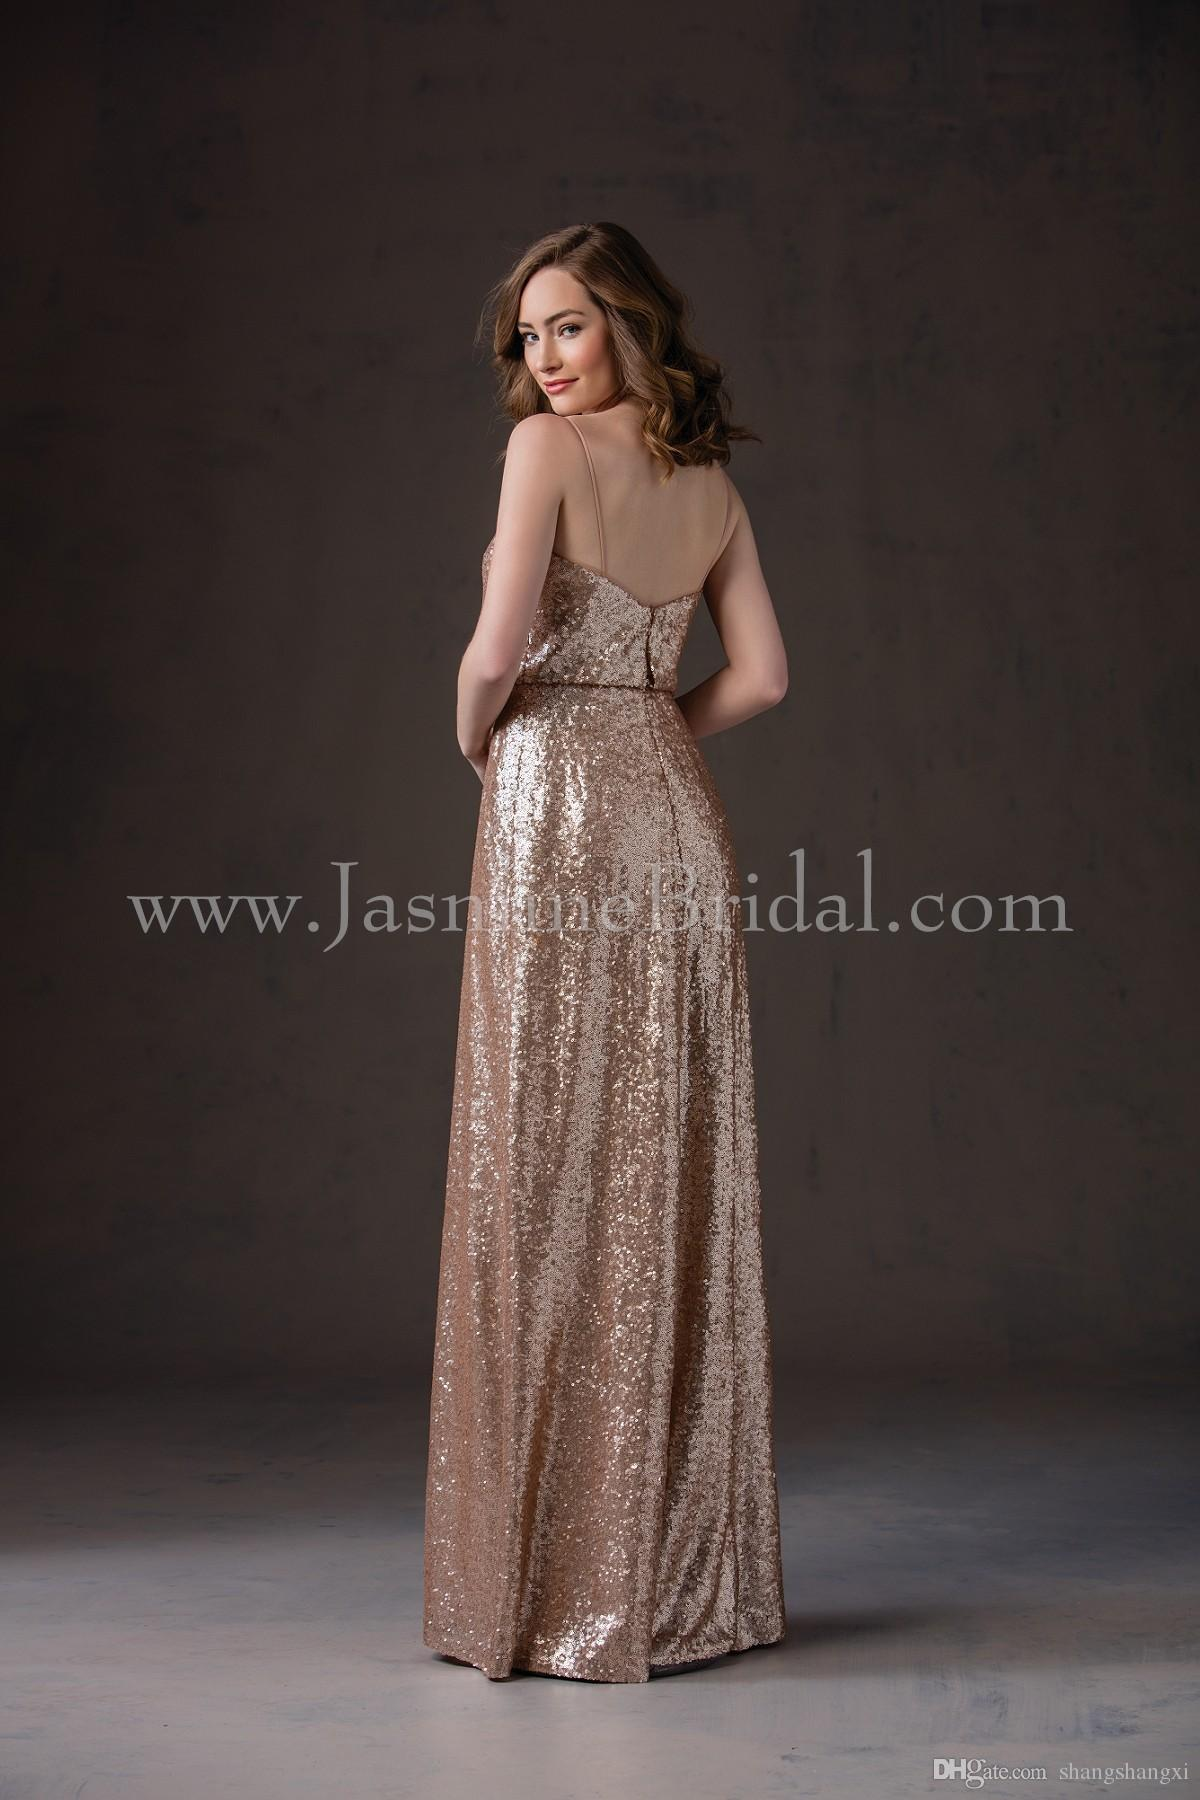 Cheap hot gold 2017 fall jasmine bridesmaid dresses cheap hot gold 2017 fall jasmine bridesmaid dresses cheap spaghetti strap a line sequins long junior bridesmaid ombrellifo Gallery